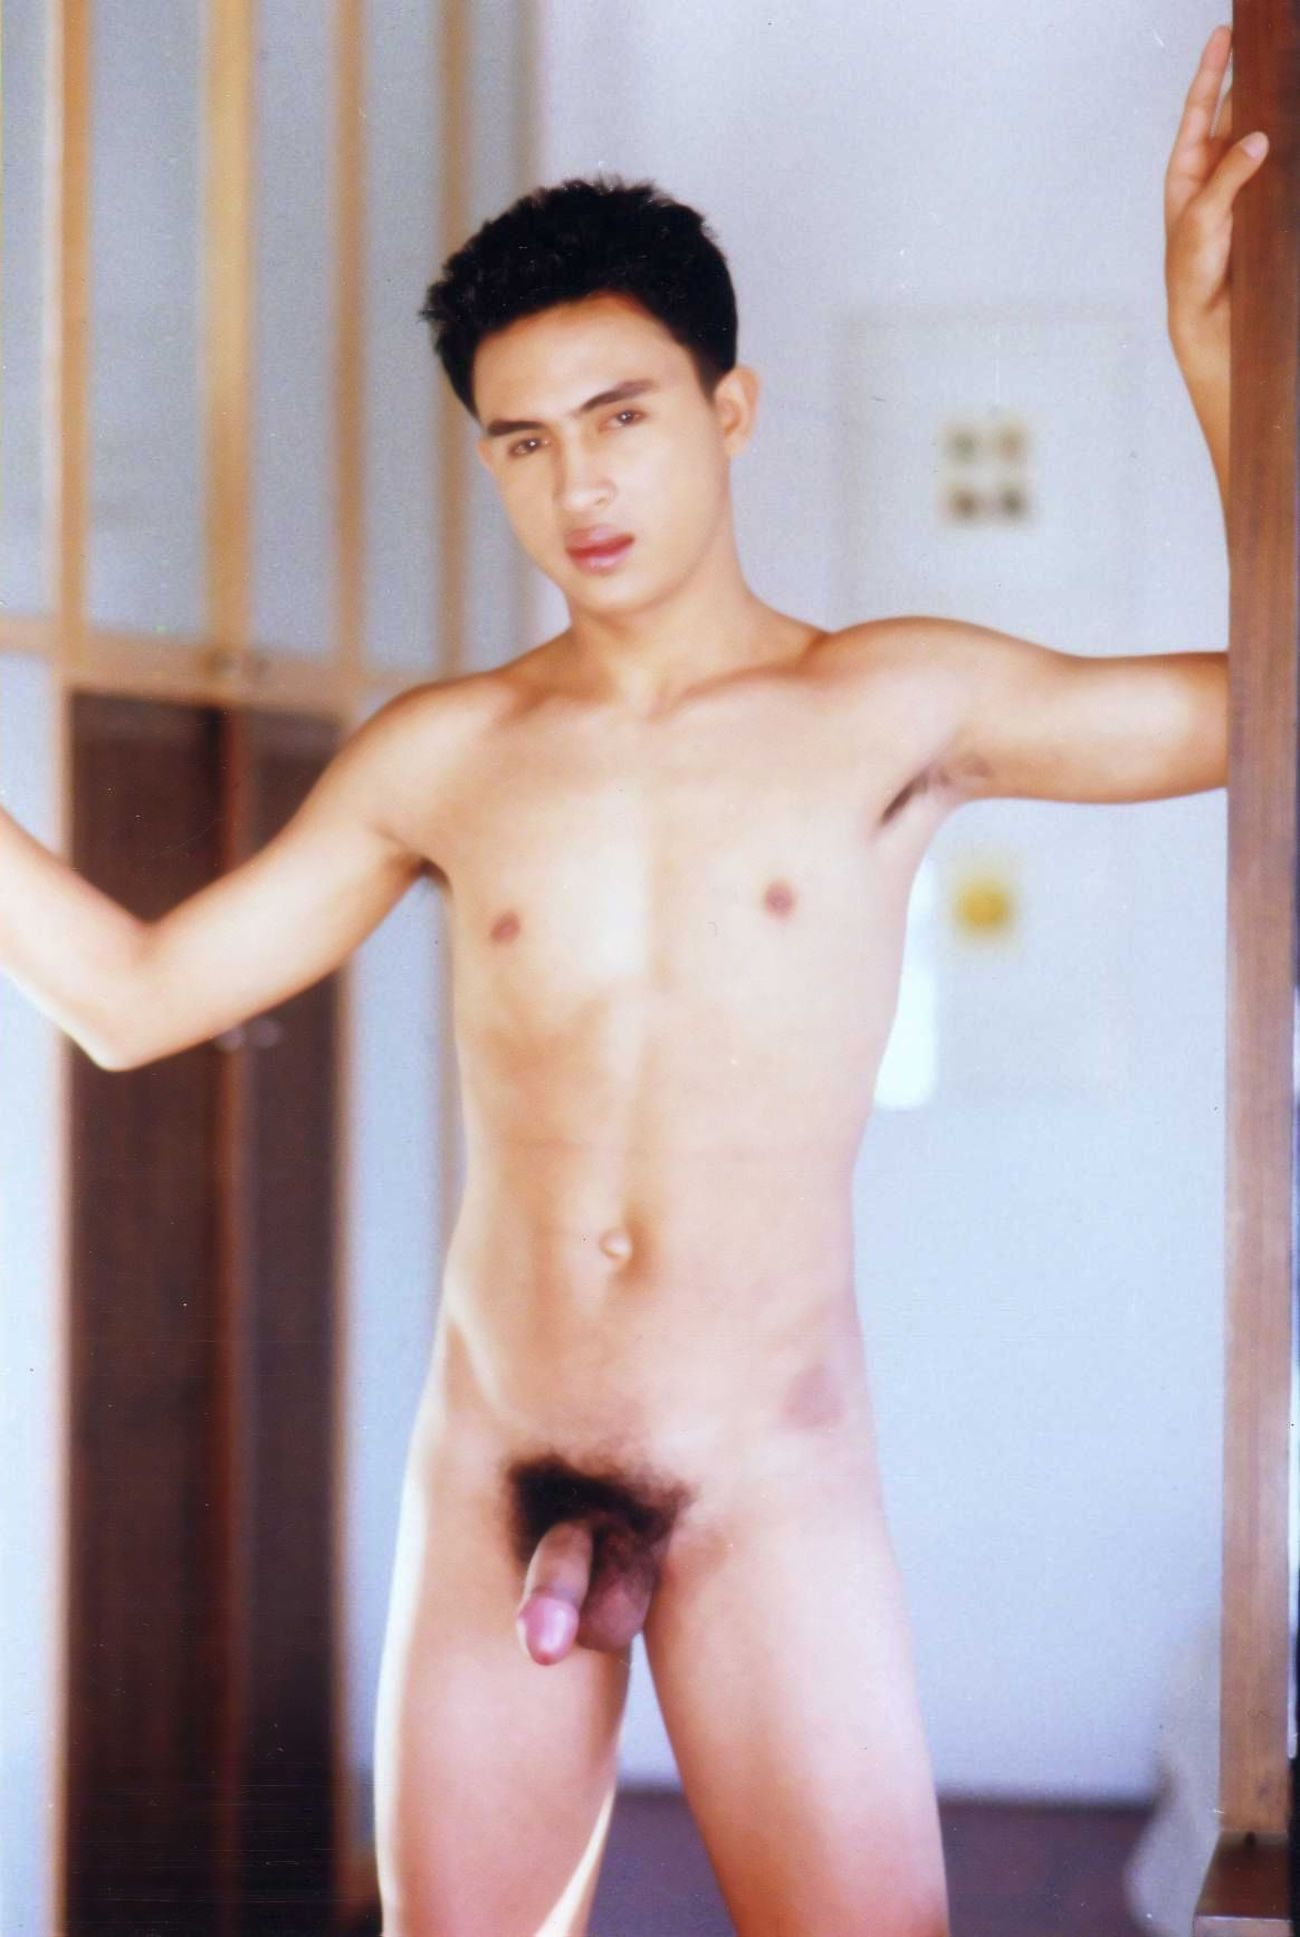 real escort homo pics thai sex